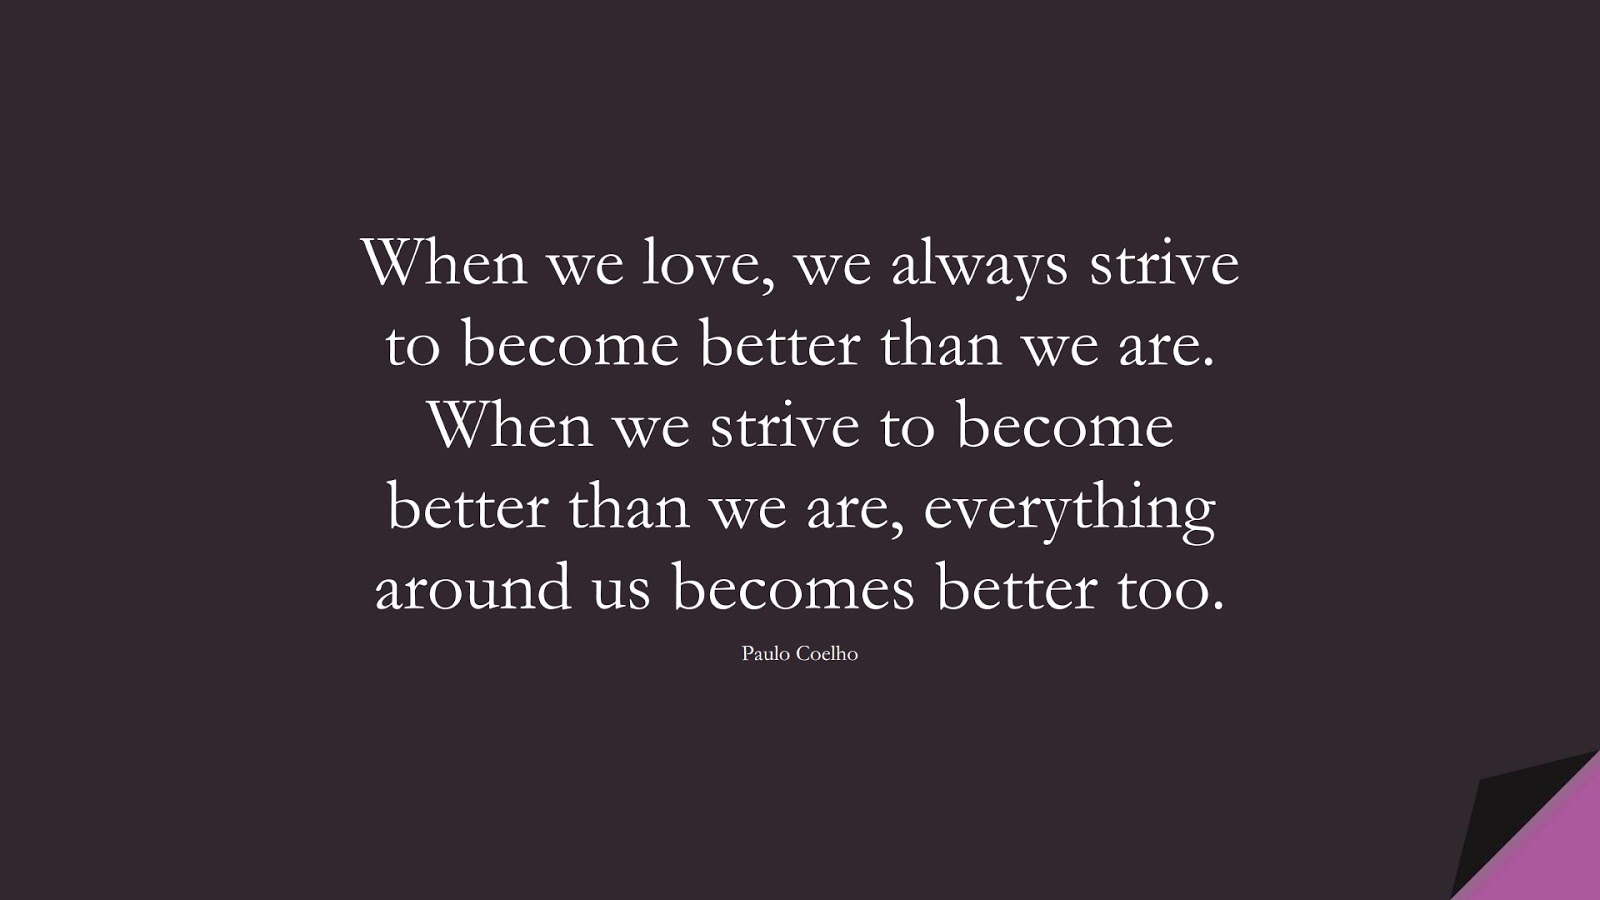 When we love, we always strive to become better than we are. When we strive to become better than we are, everything around us becomes better too. (Paulo Coelho);  #LoveQuotes